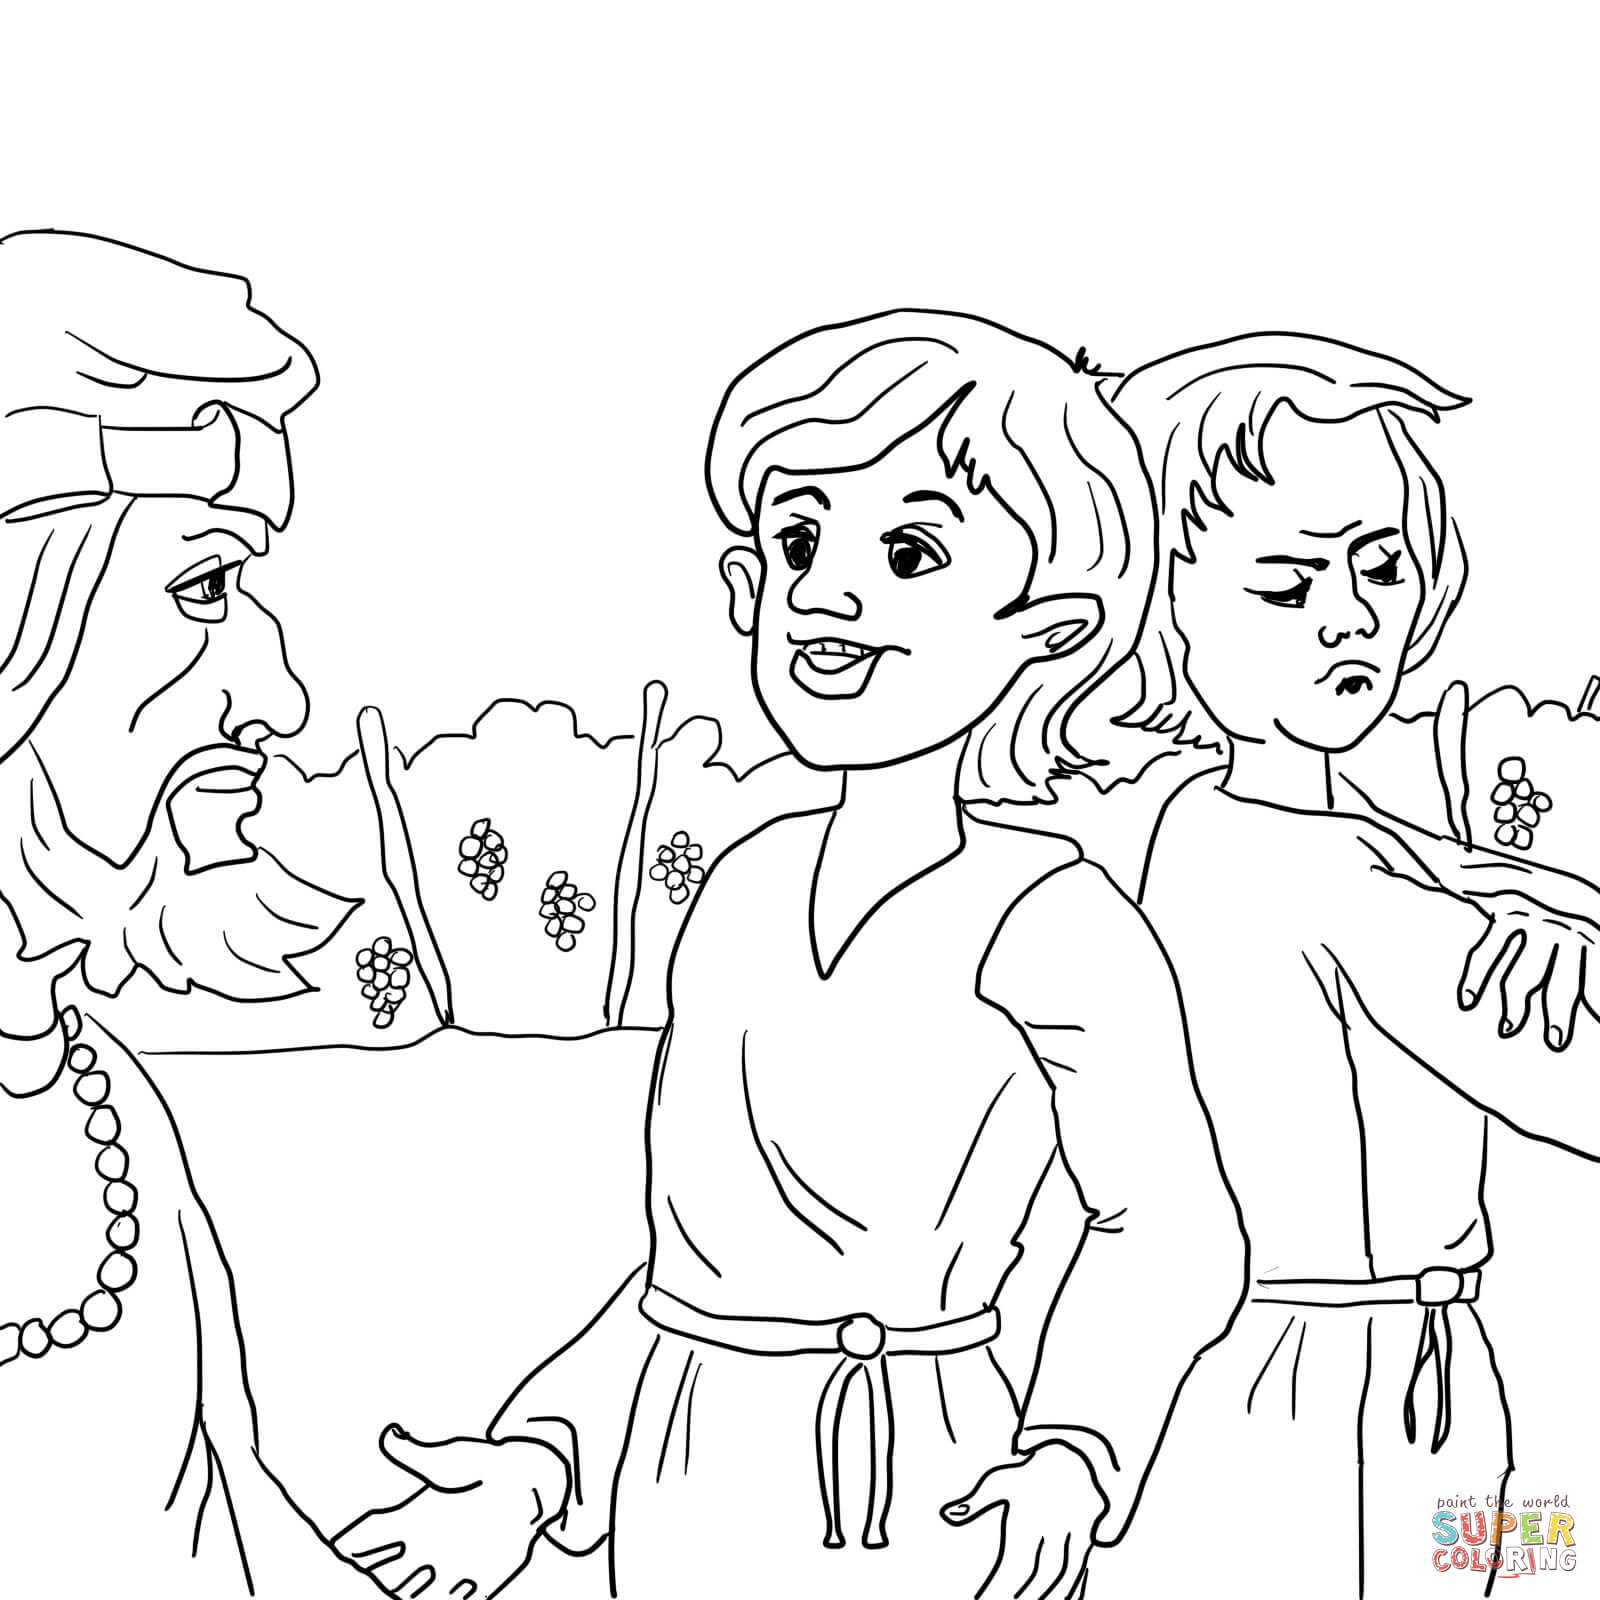 Parable Of The Two Sons Coloring Page